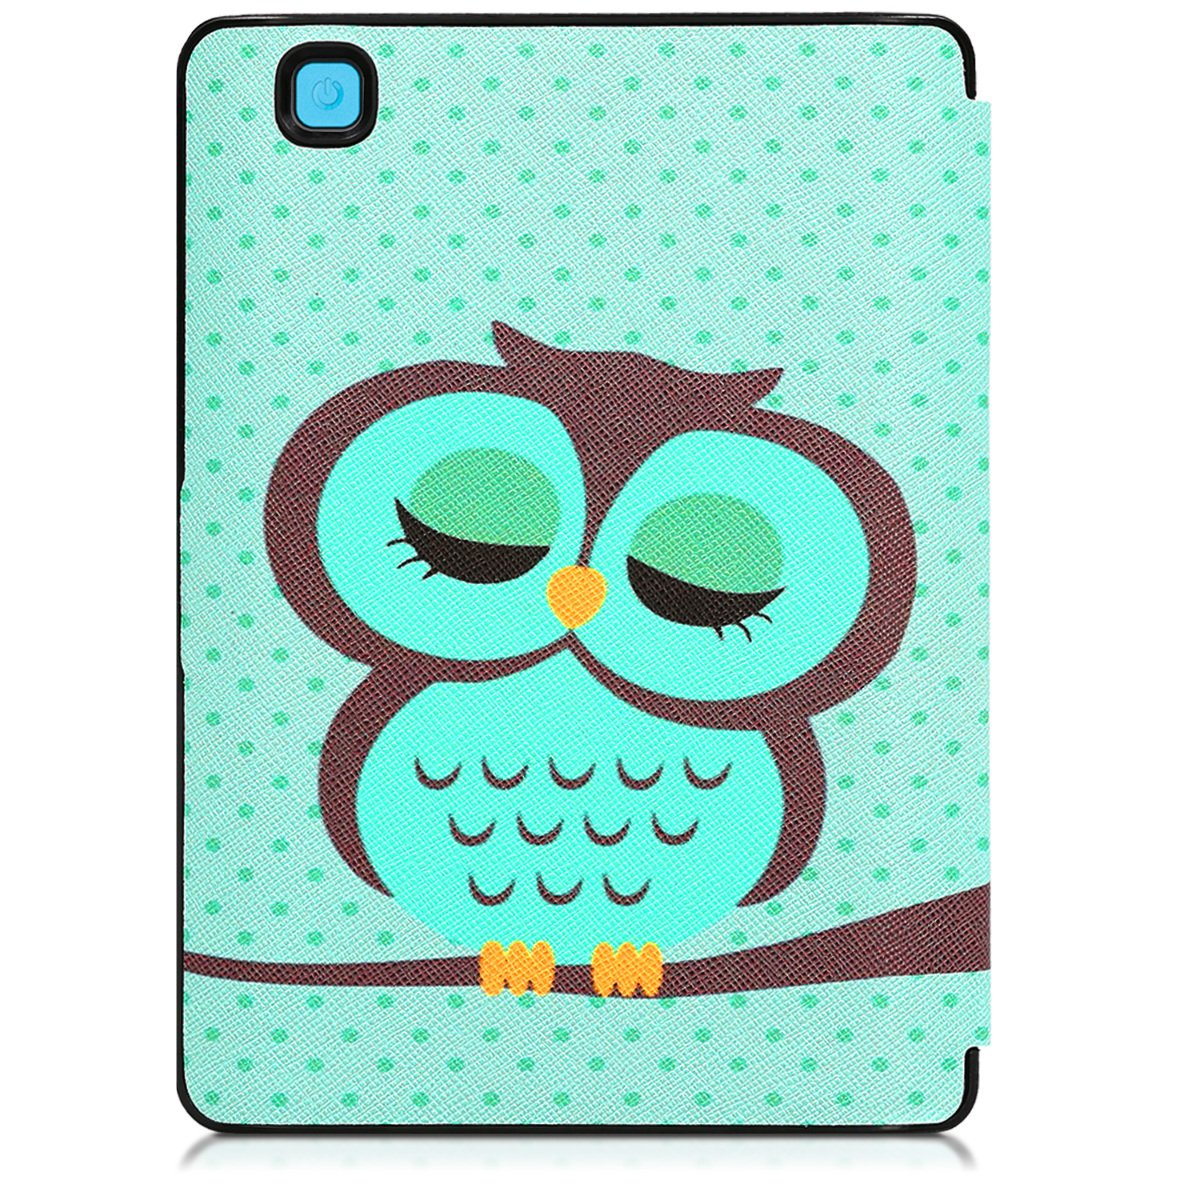 kwmobile Cover case for Kobo Aura Edition 2 with stand - Ultra slim case made of synthetic leather Sleeping Owl in turquoise brown mint by kwmobile (Image #4)